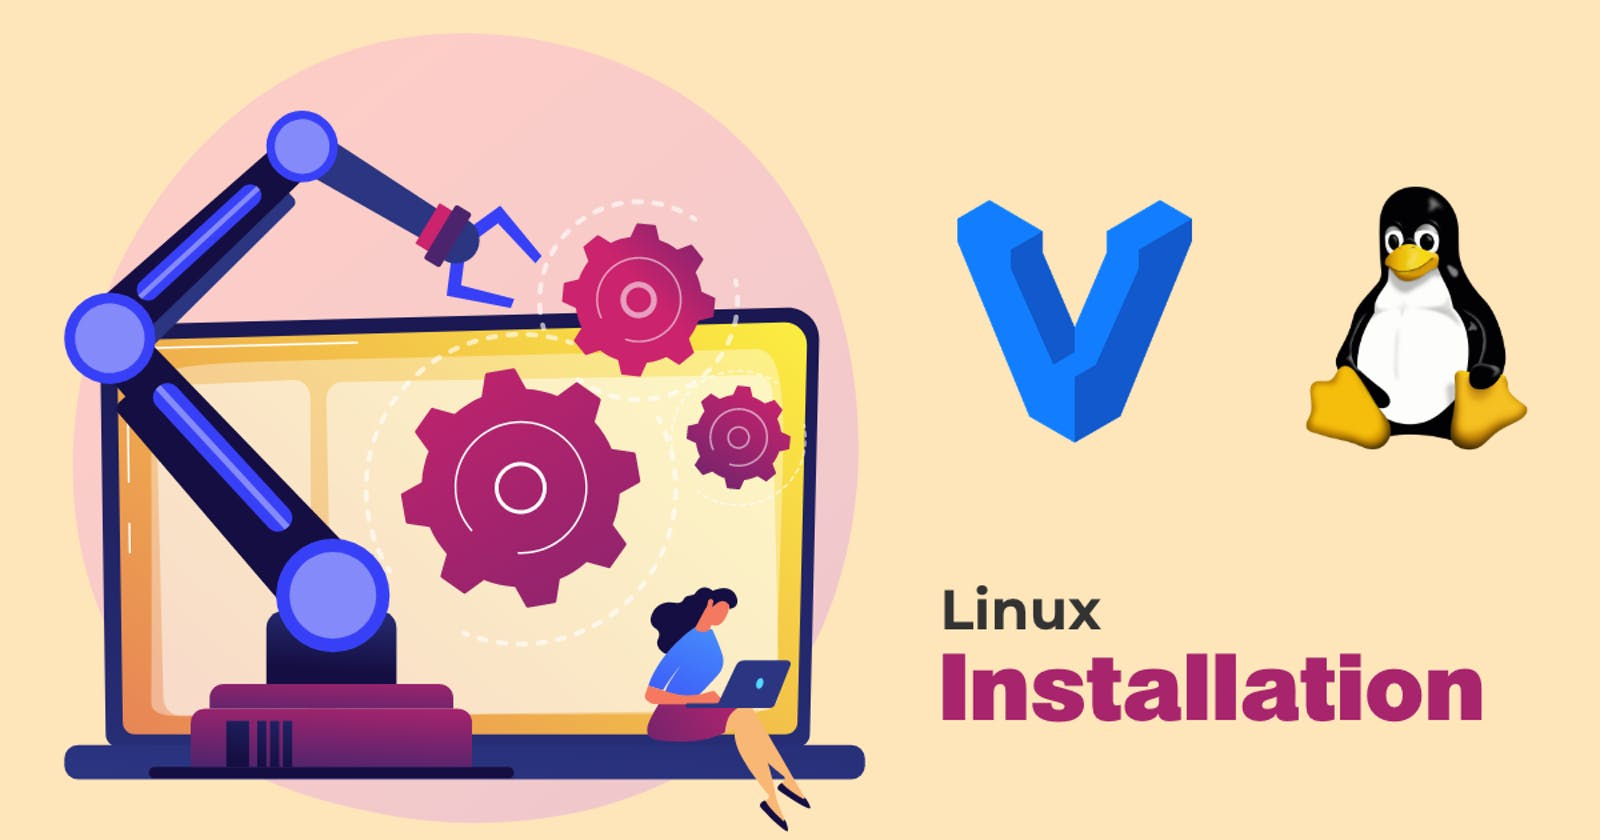 Automating Linux Installation using Vagrant and VirtualBox